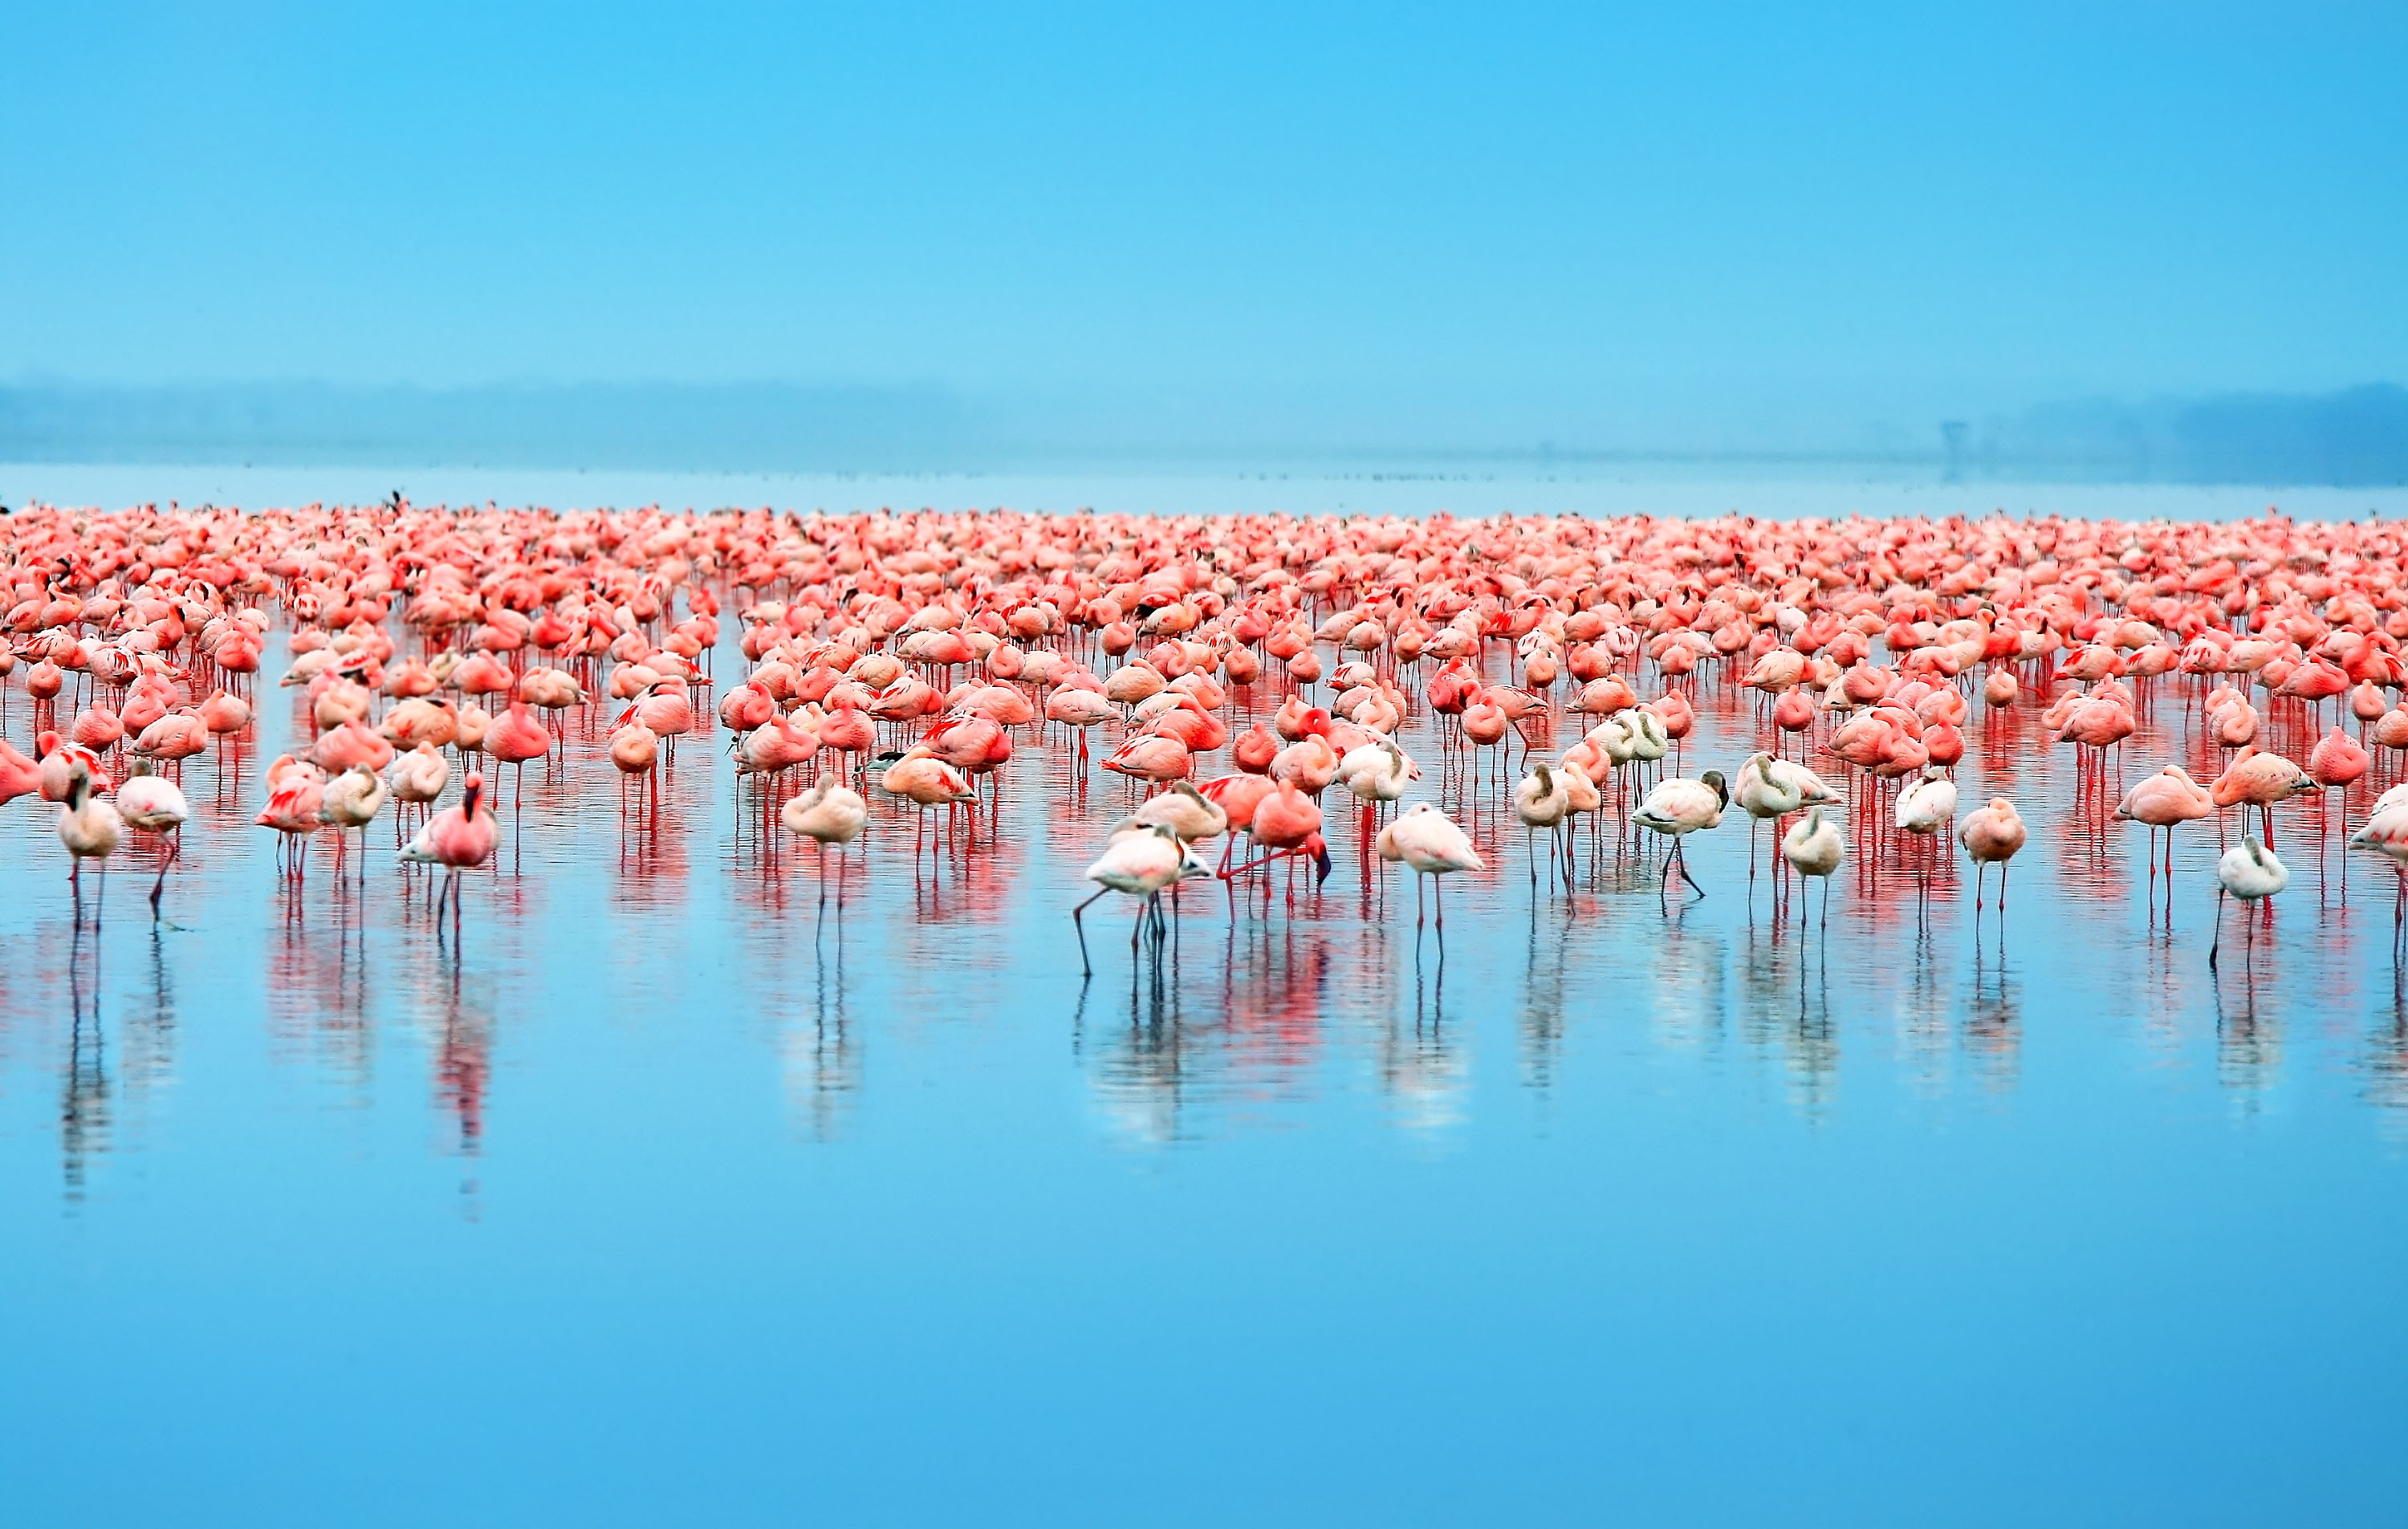 http://obatala.co.uk/wp-content/uploads/2015/09/Flamingos.jpg